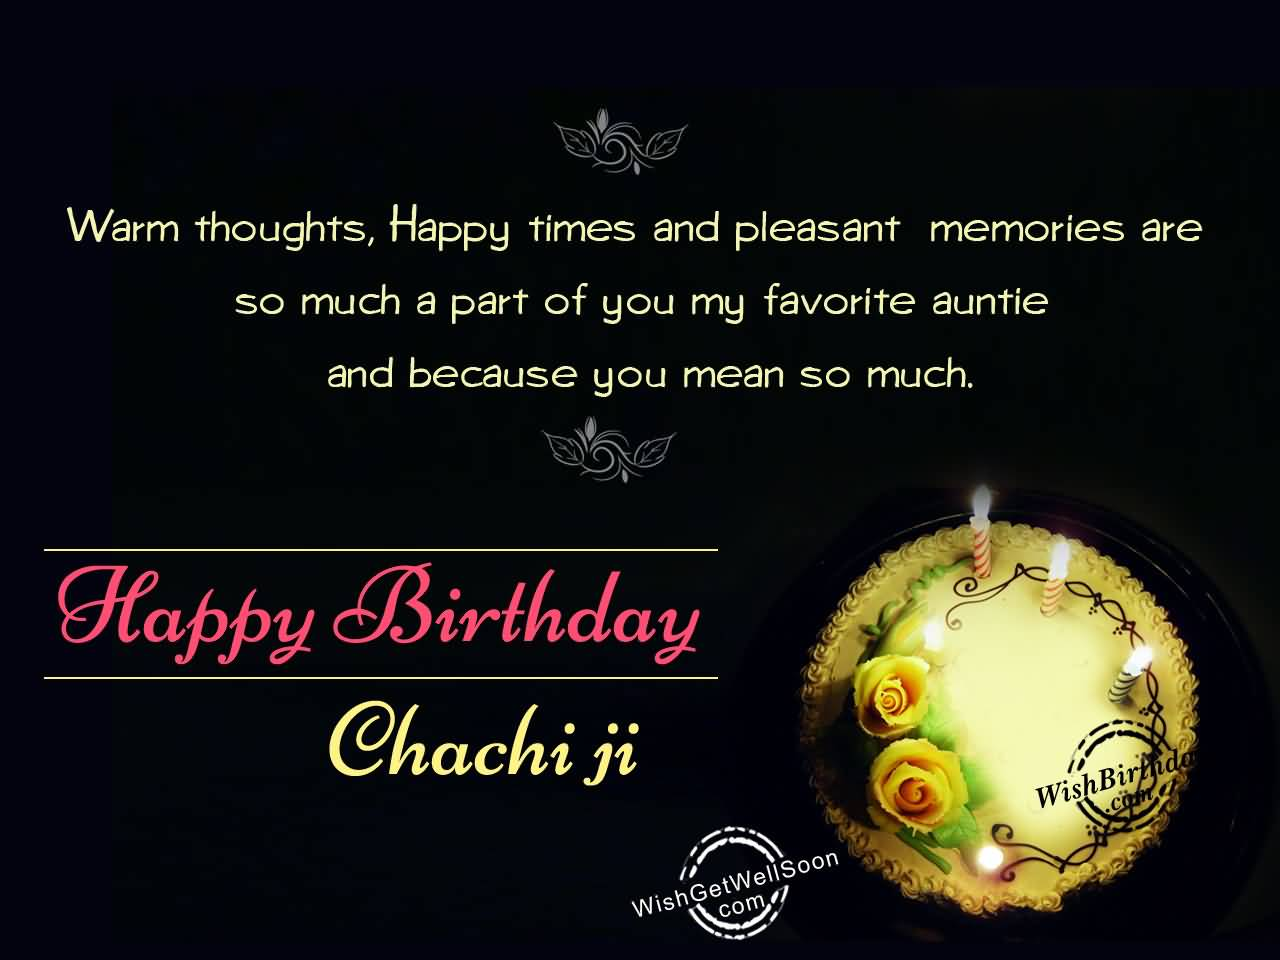 Warm Thoughts, Happy Times And Pleasant Happy Birthday Chachi Ji